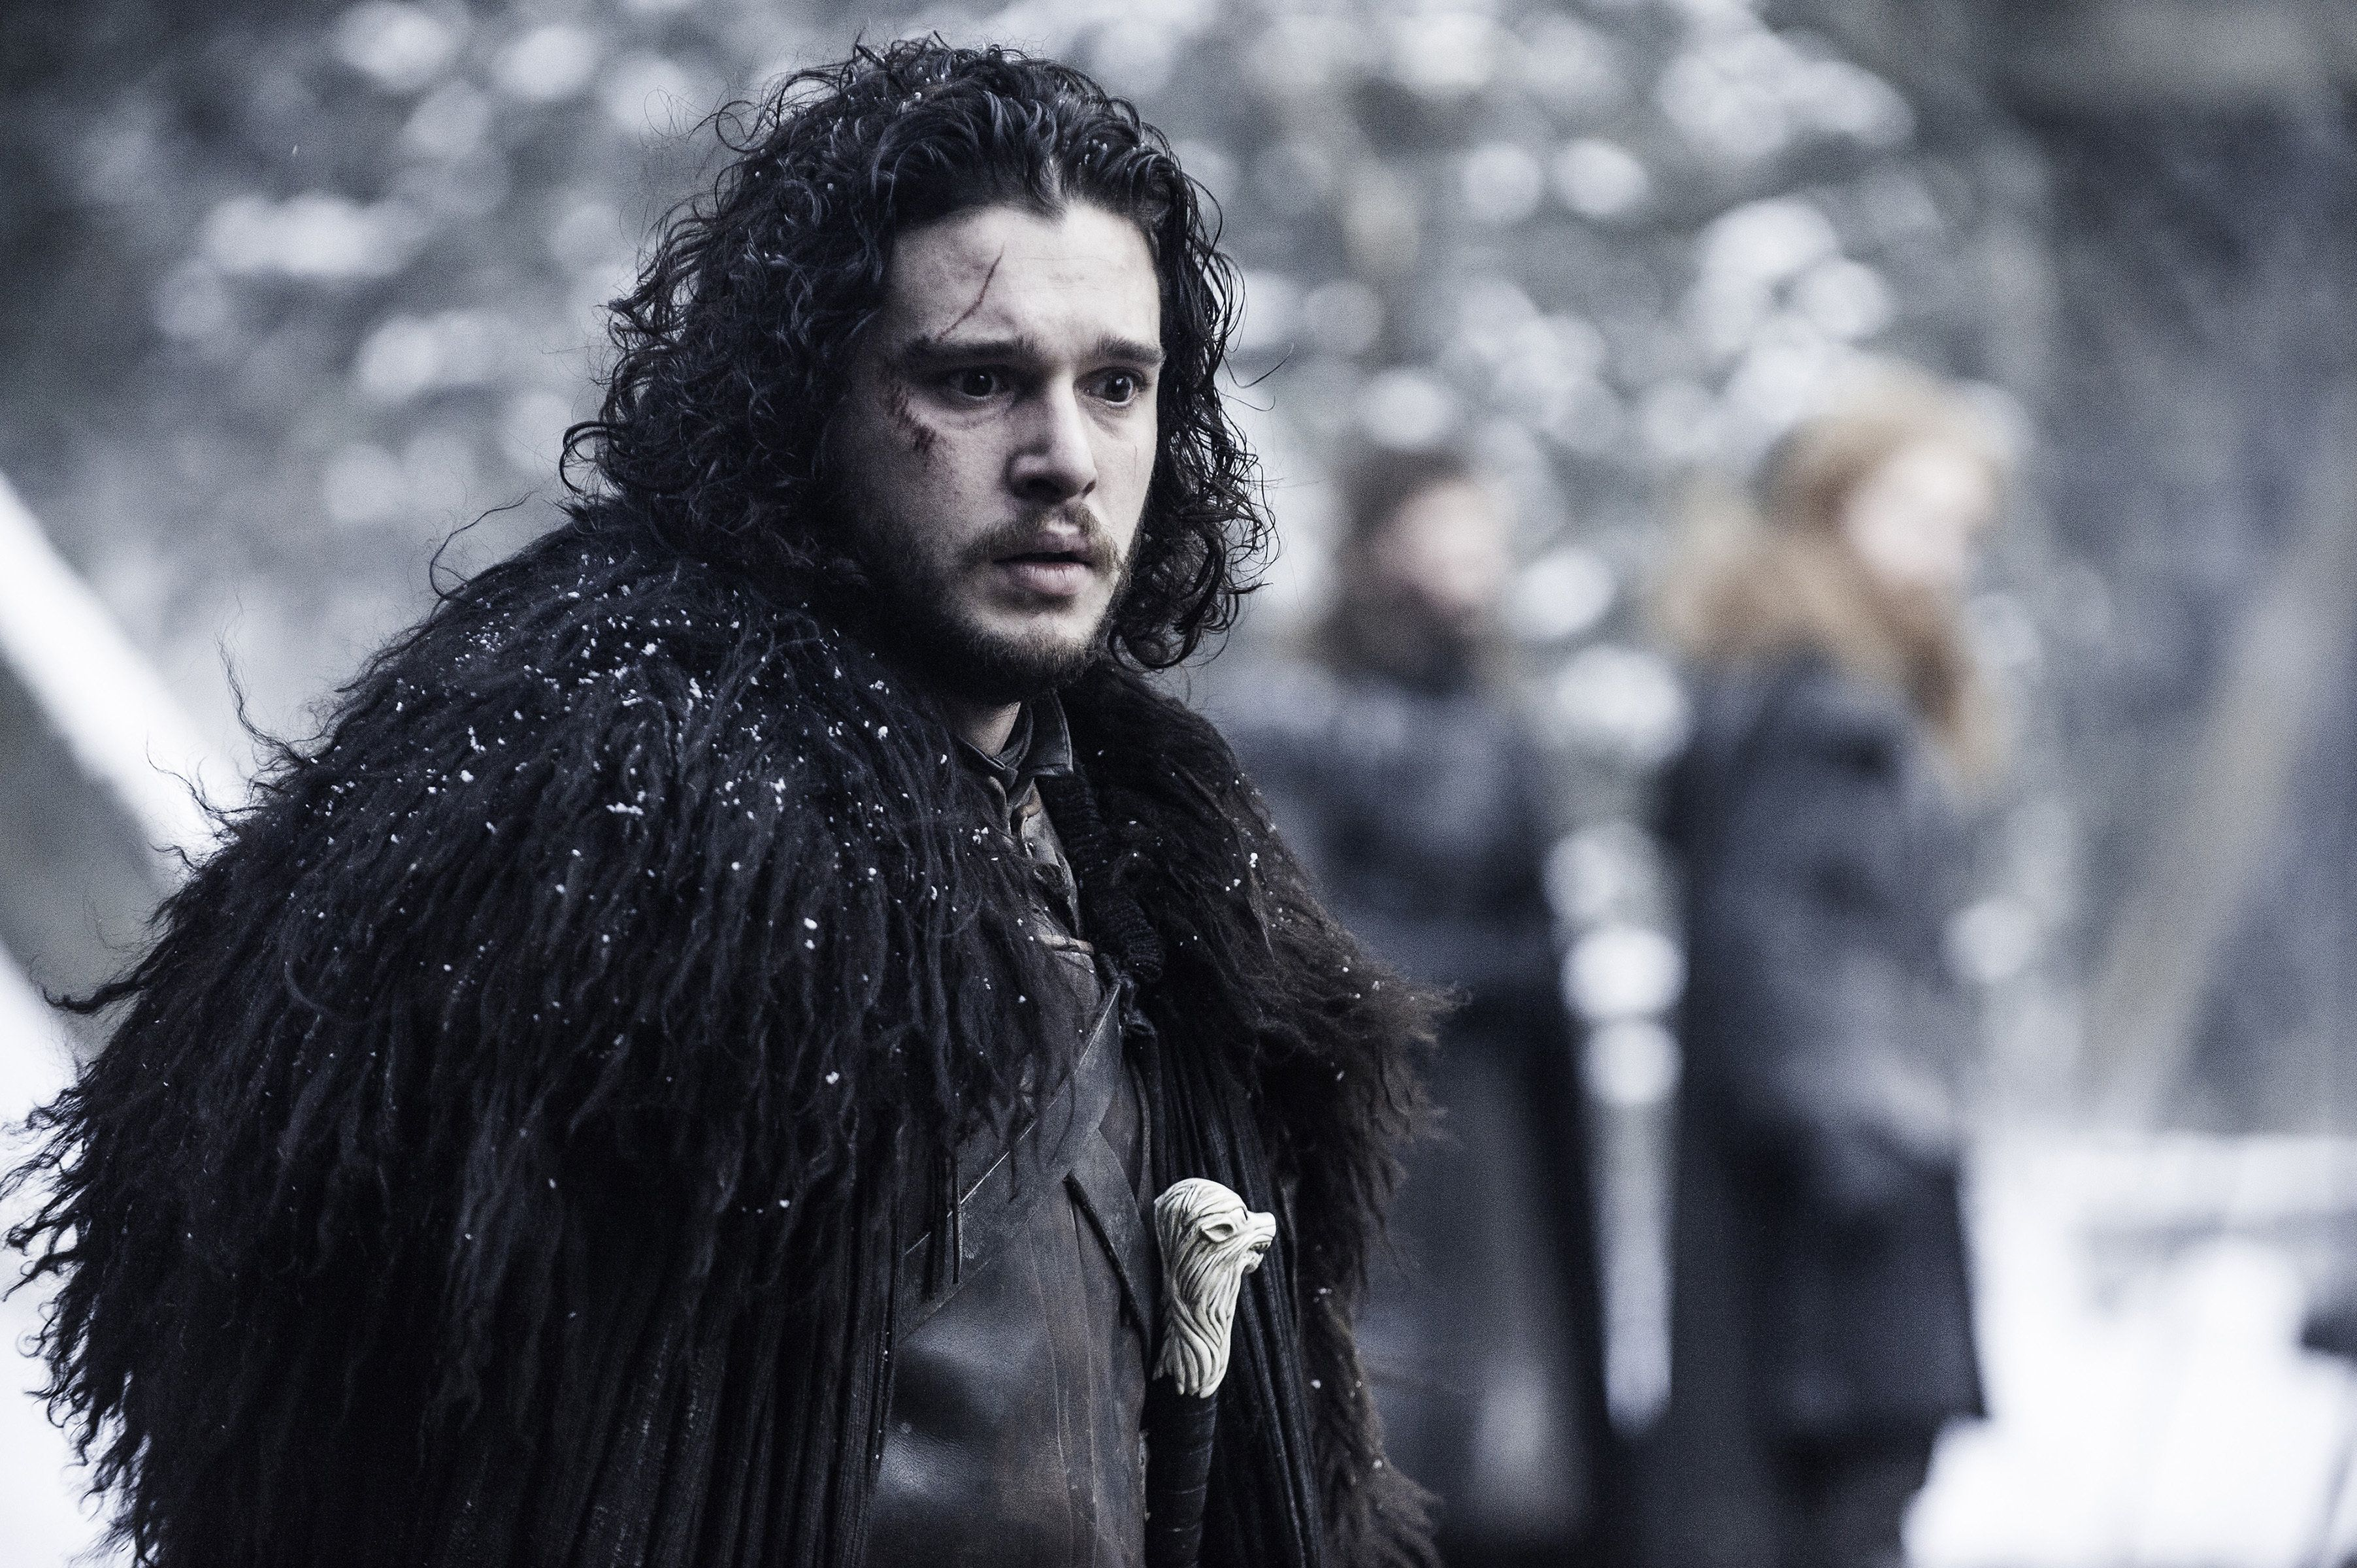 Director David Nutter Talks 'Game Of Thrones' Security On Set: Like The